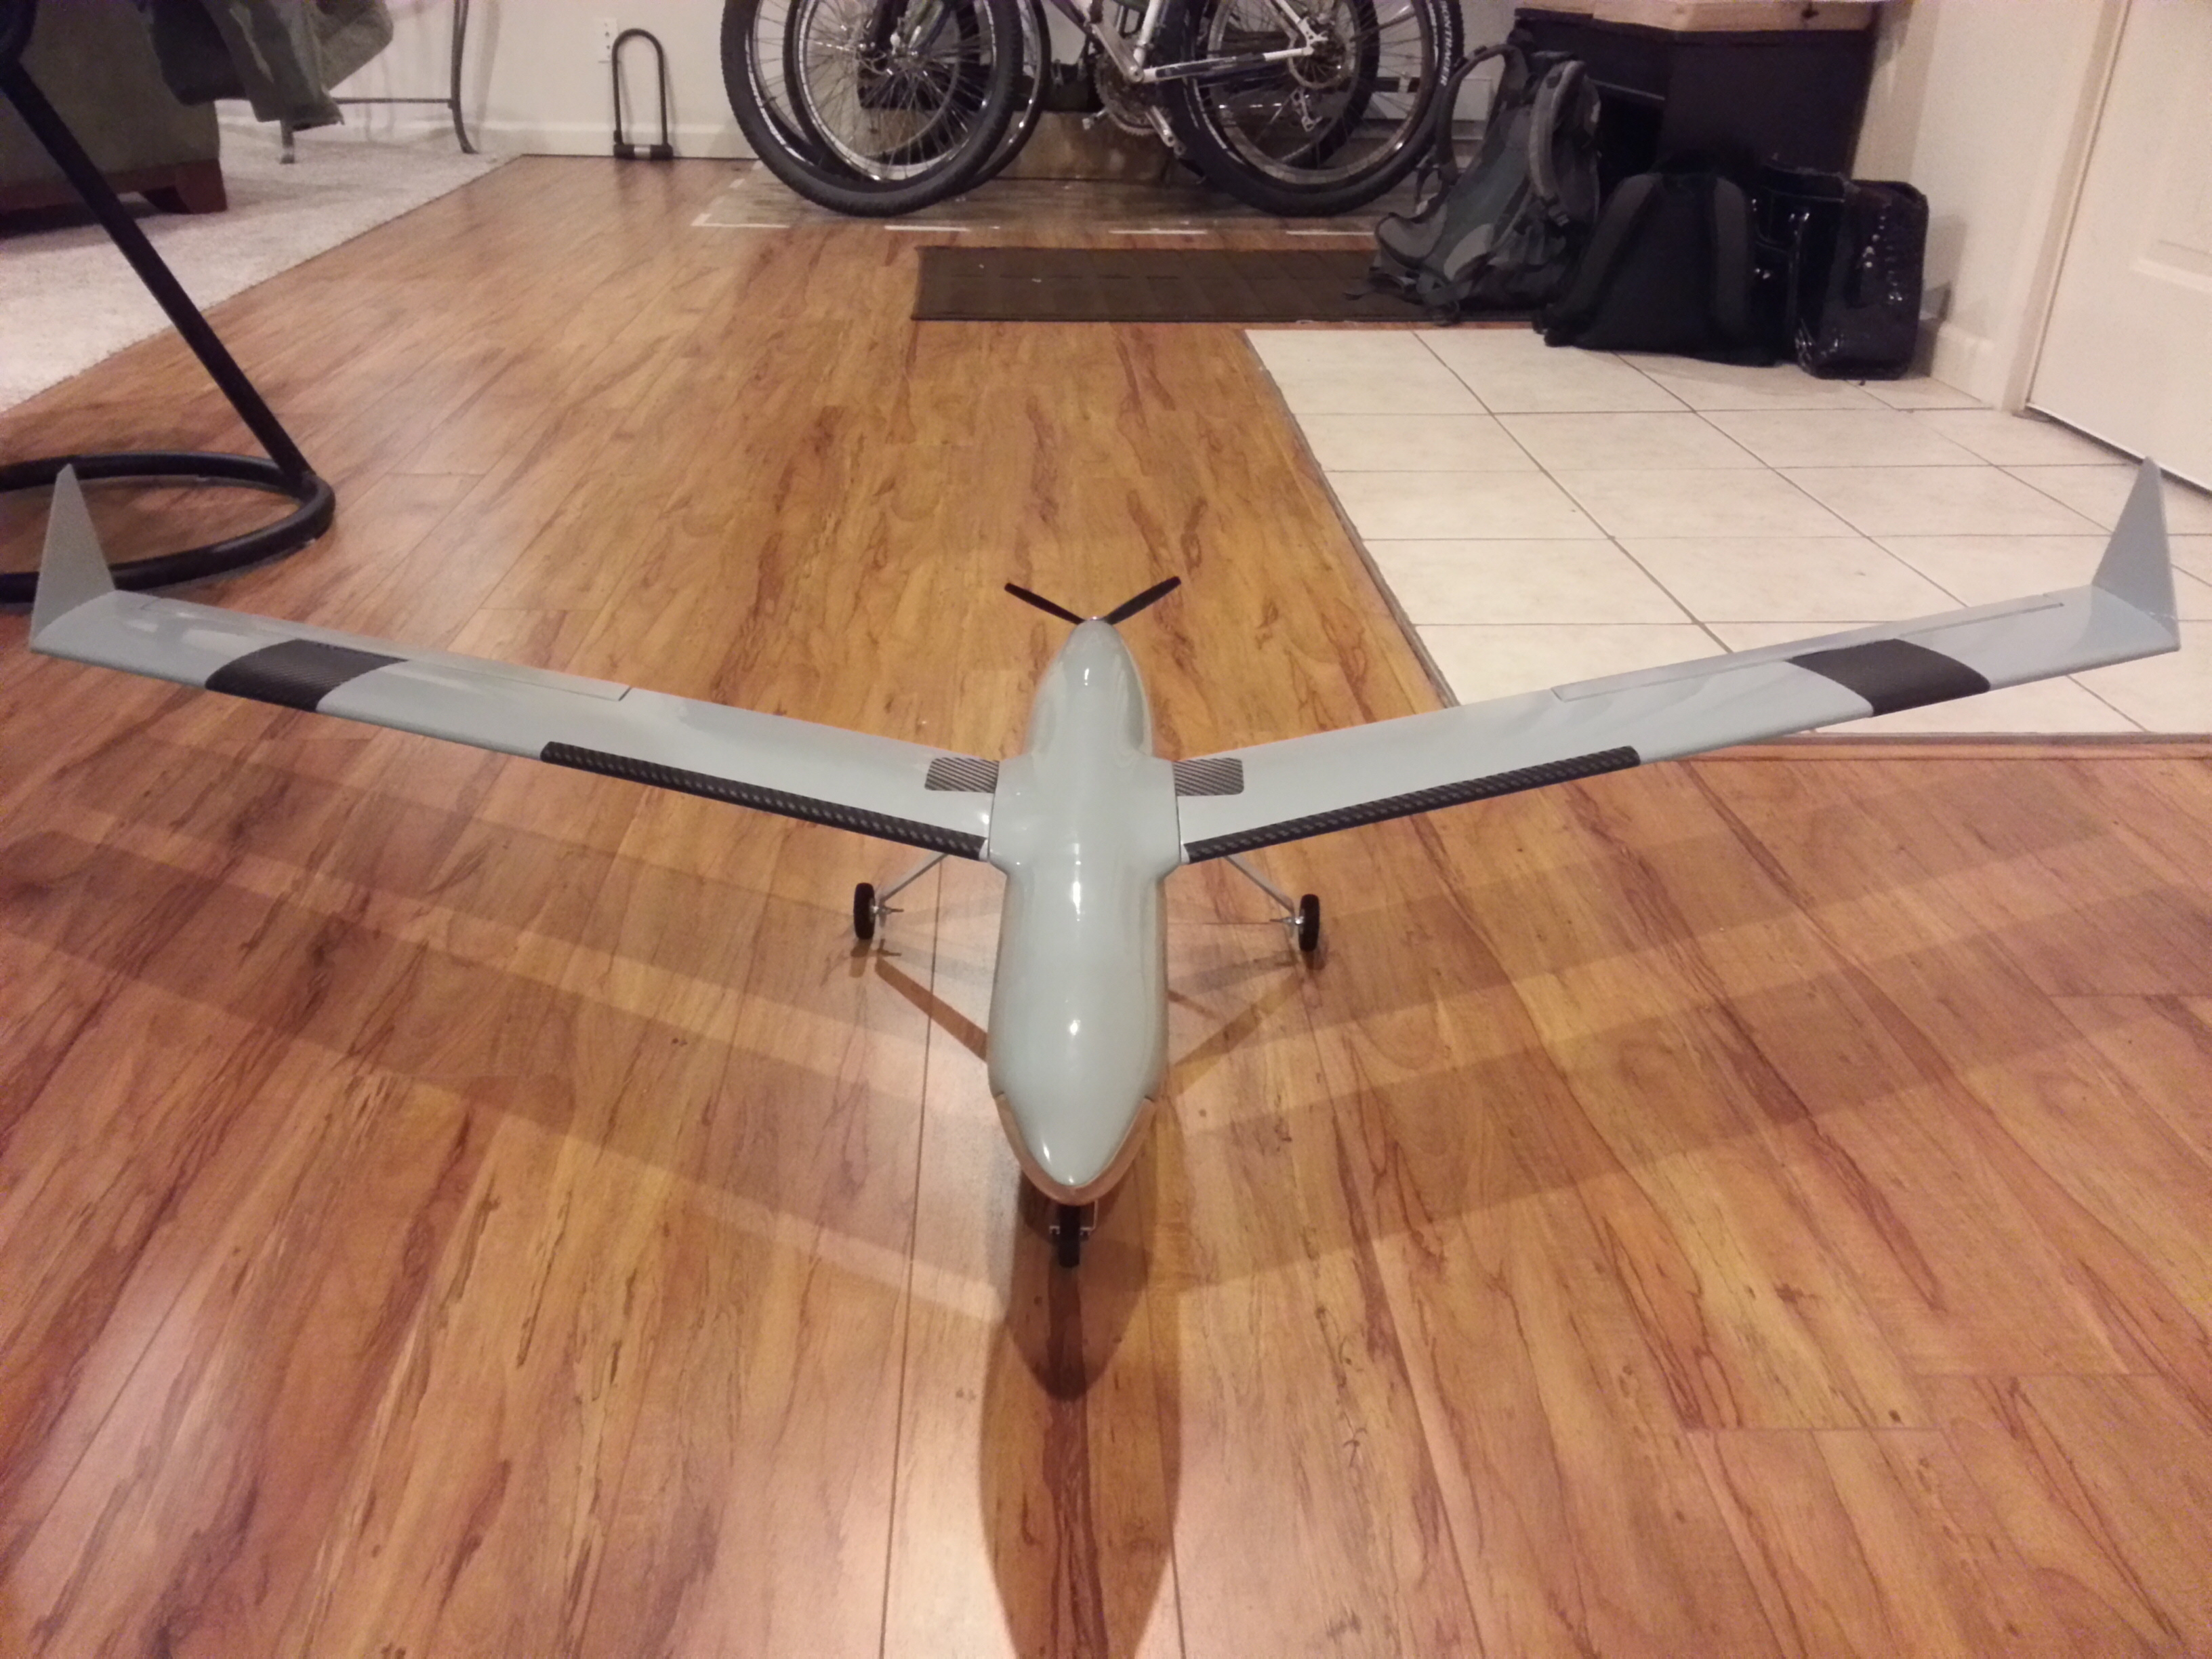 Make a UAV for Research and Photography: 8 Steps (with Pictures)